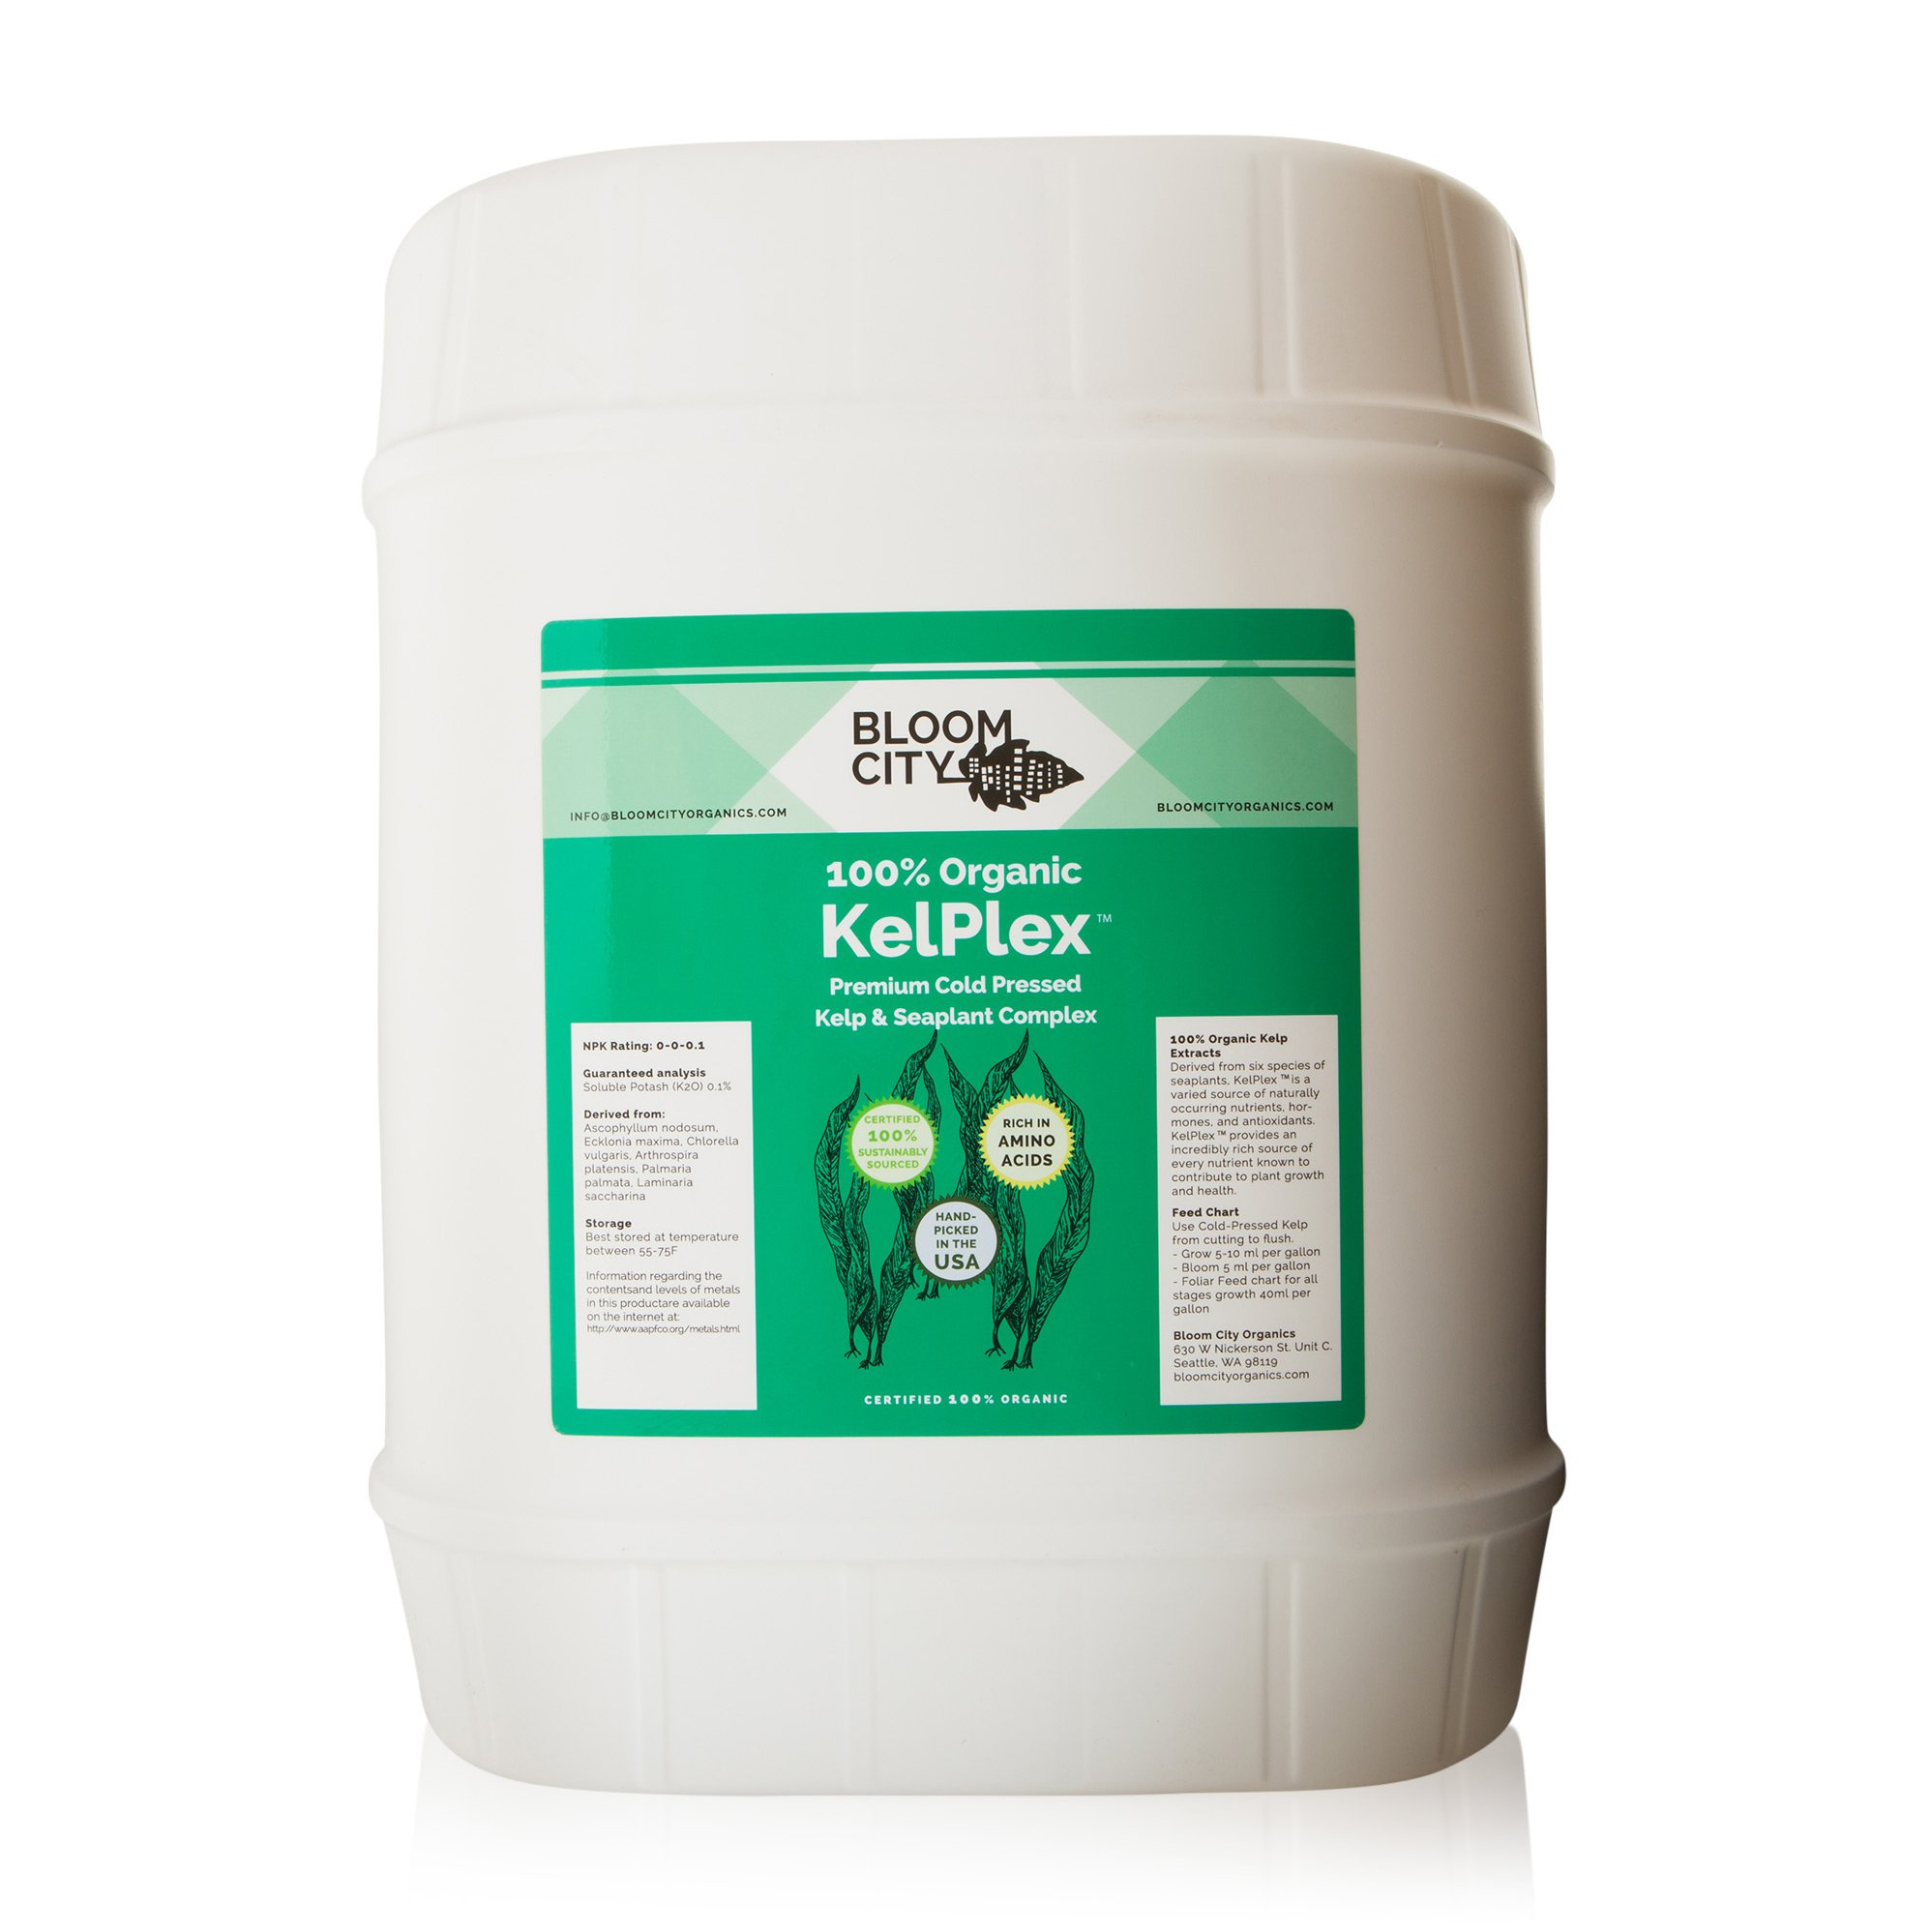 Organic Liquid Seaweed and Kelp Fertilizer Supplement by Bloom CIty, 5 Gallon (640 oz) Concentrated Makes 3750 Gallons by Bloom City